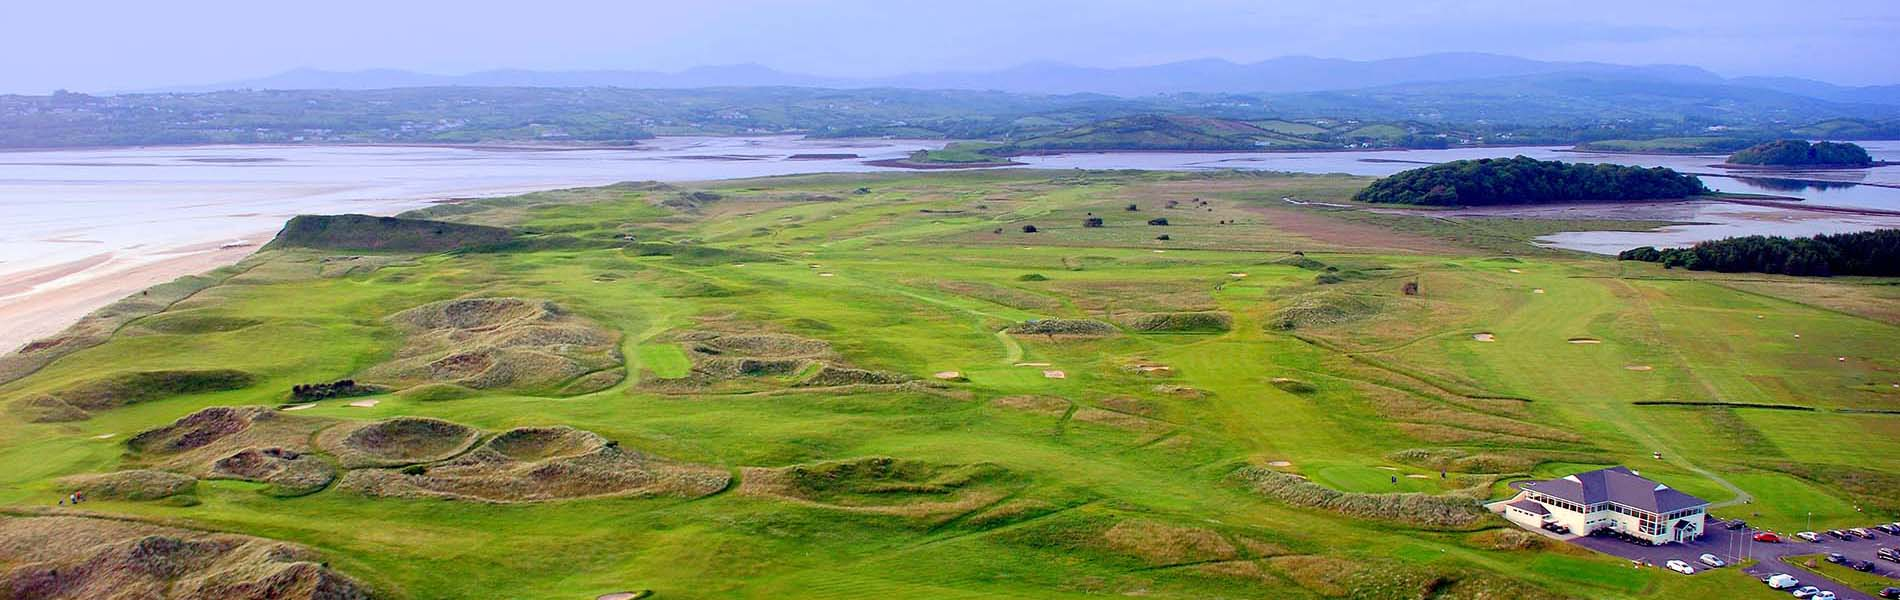 DREAM LINKS - CONCIERGE GOLF TOURS  Co Donegal Links in Murvagh        CLICK HERE FOR MORE INFORMATION